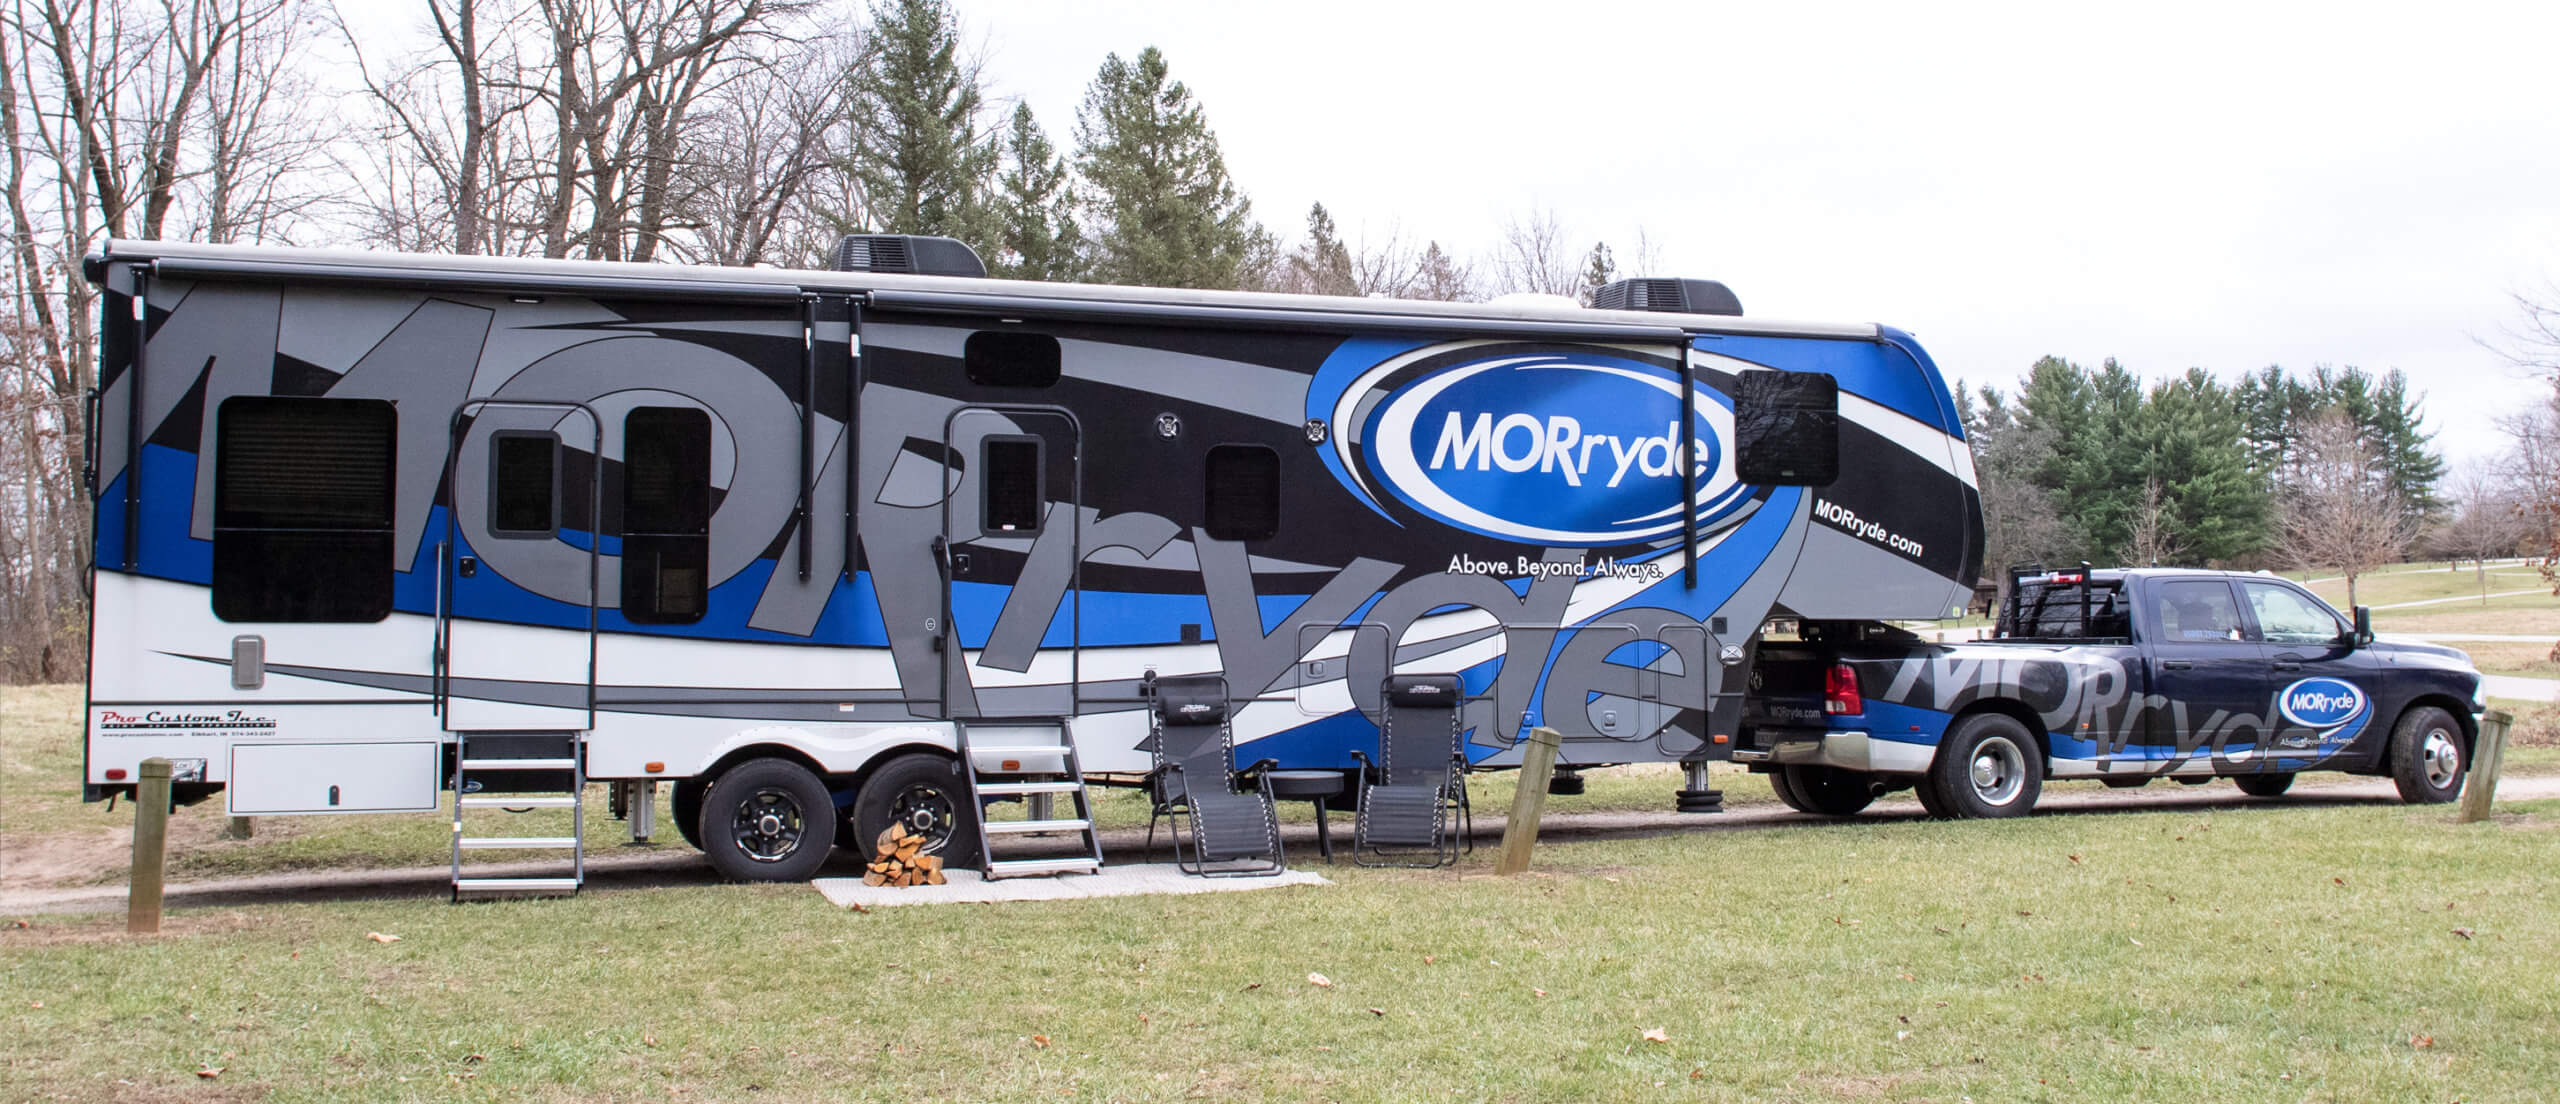 rv upgrades on the morryde 5th wheel